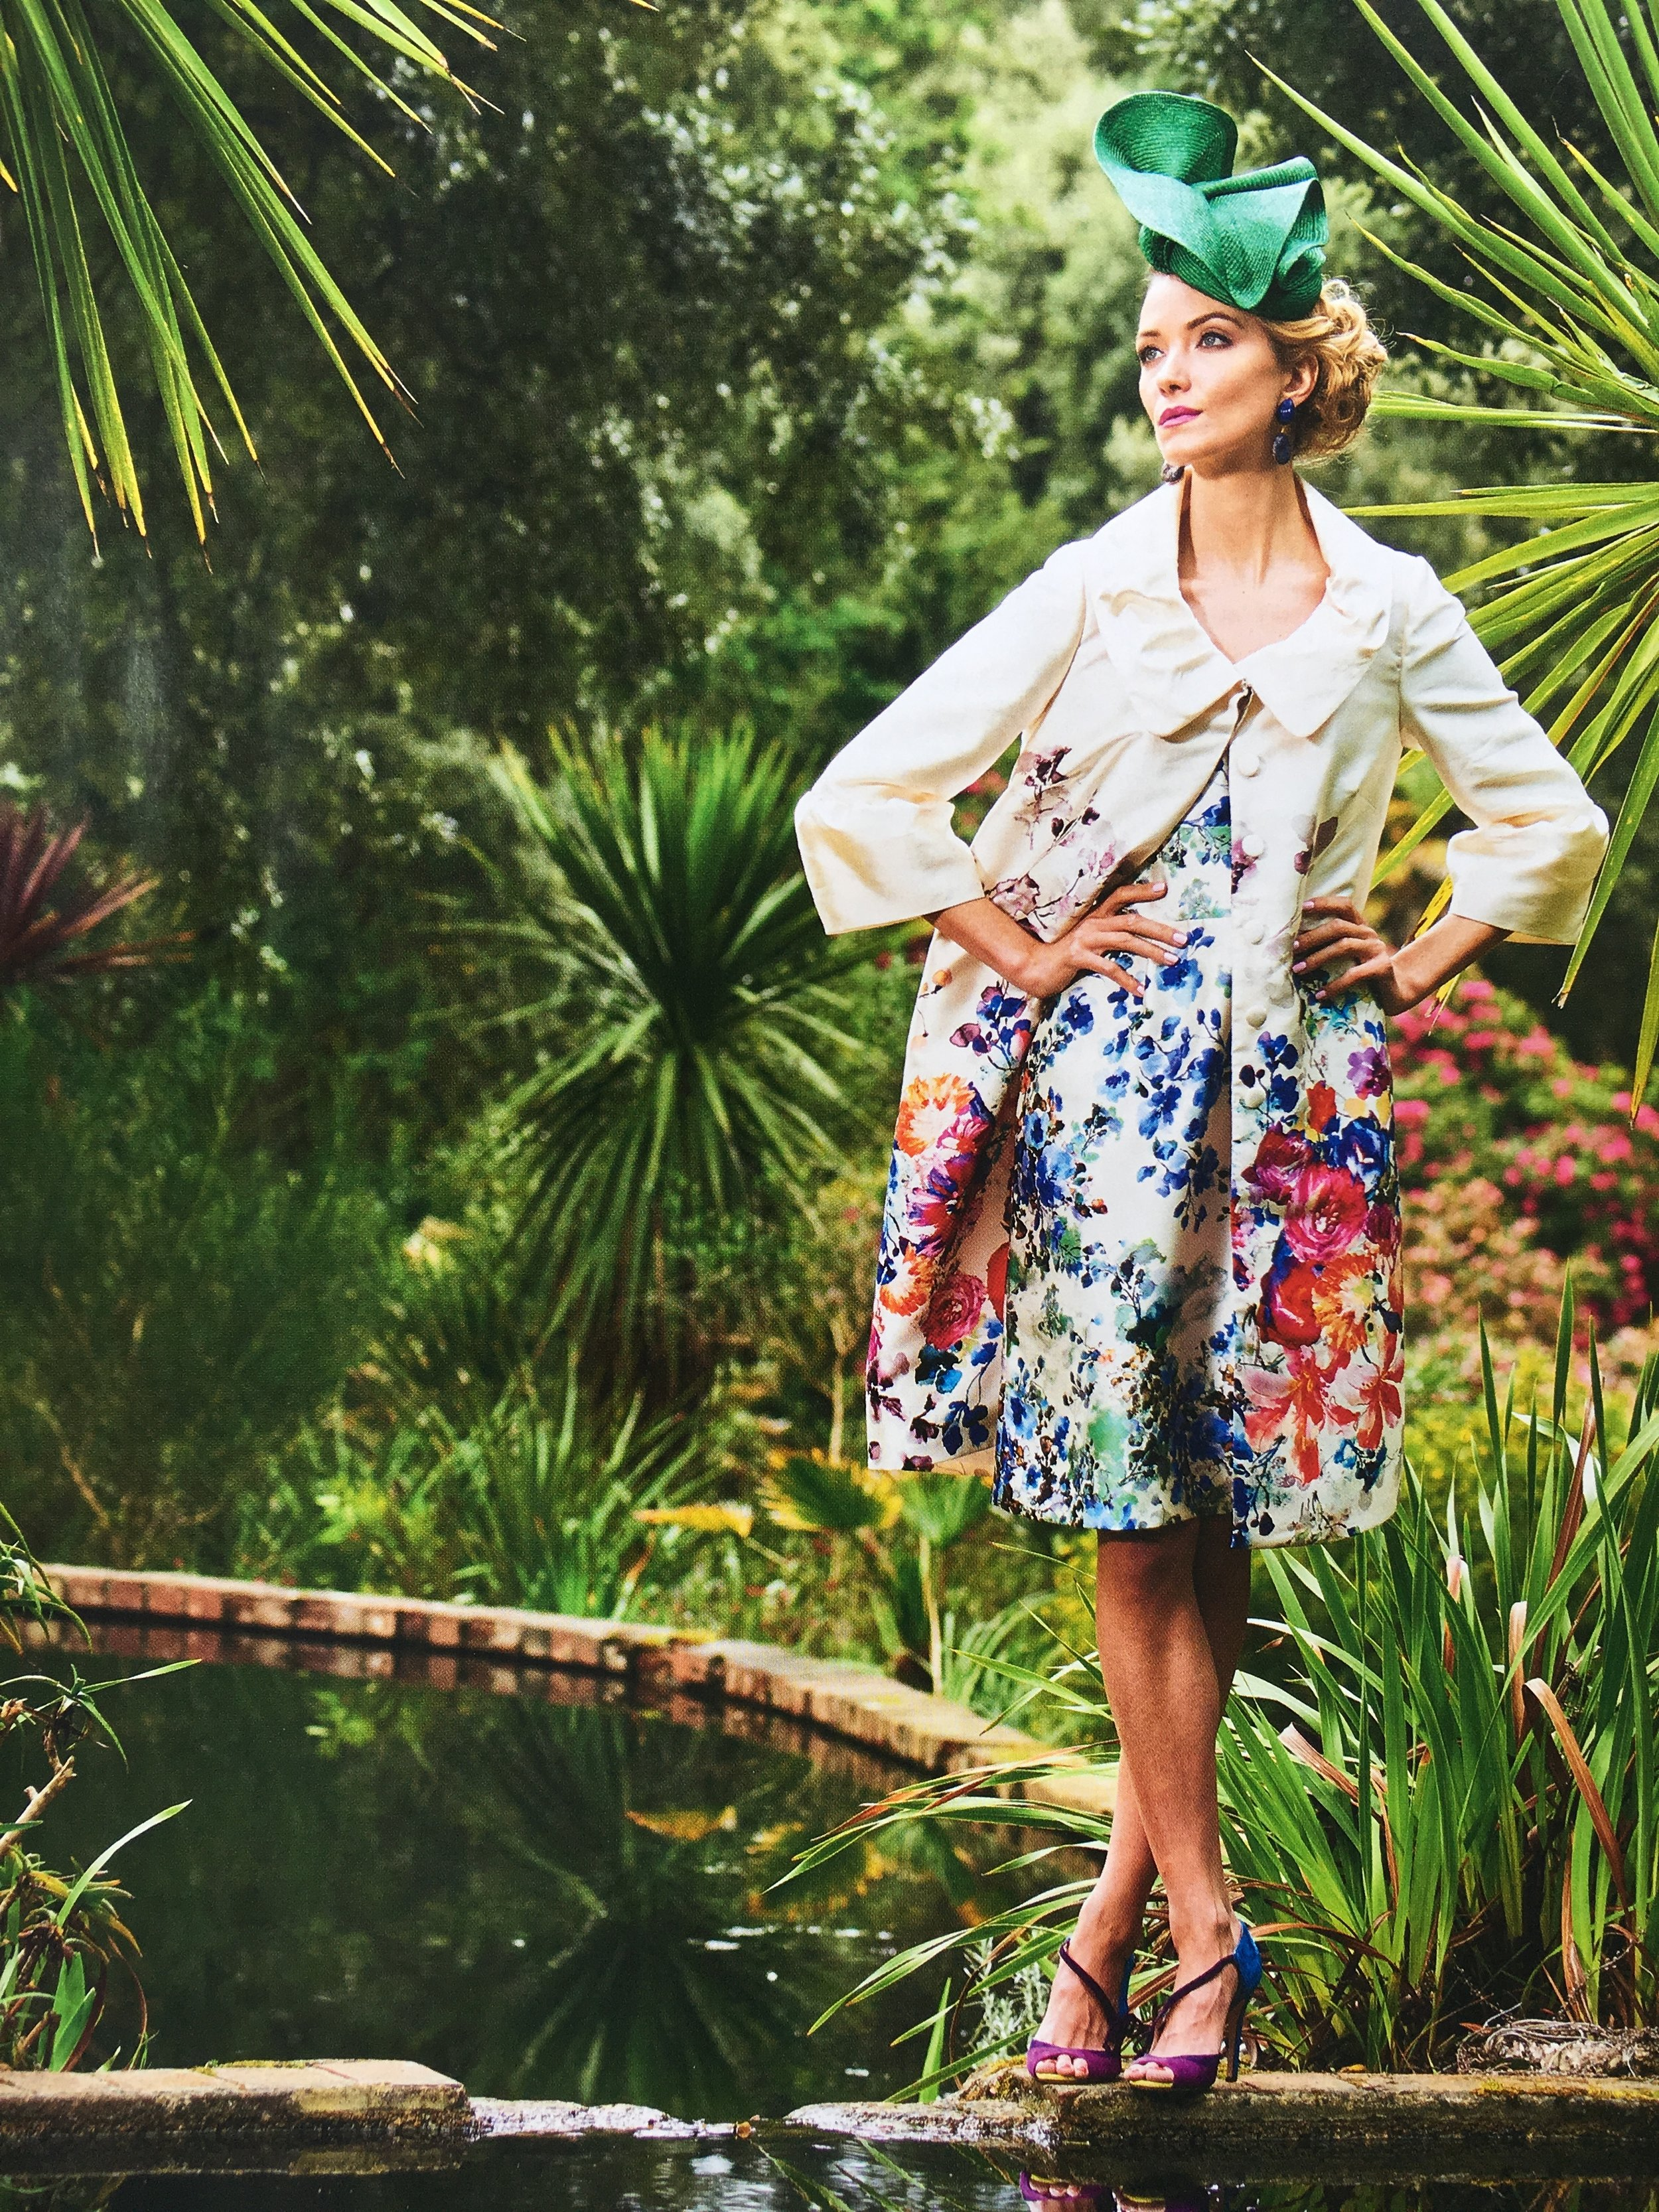 Country Life - 10th May 2017  (Volute Headpiece)